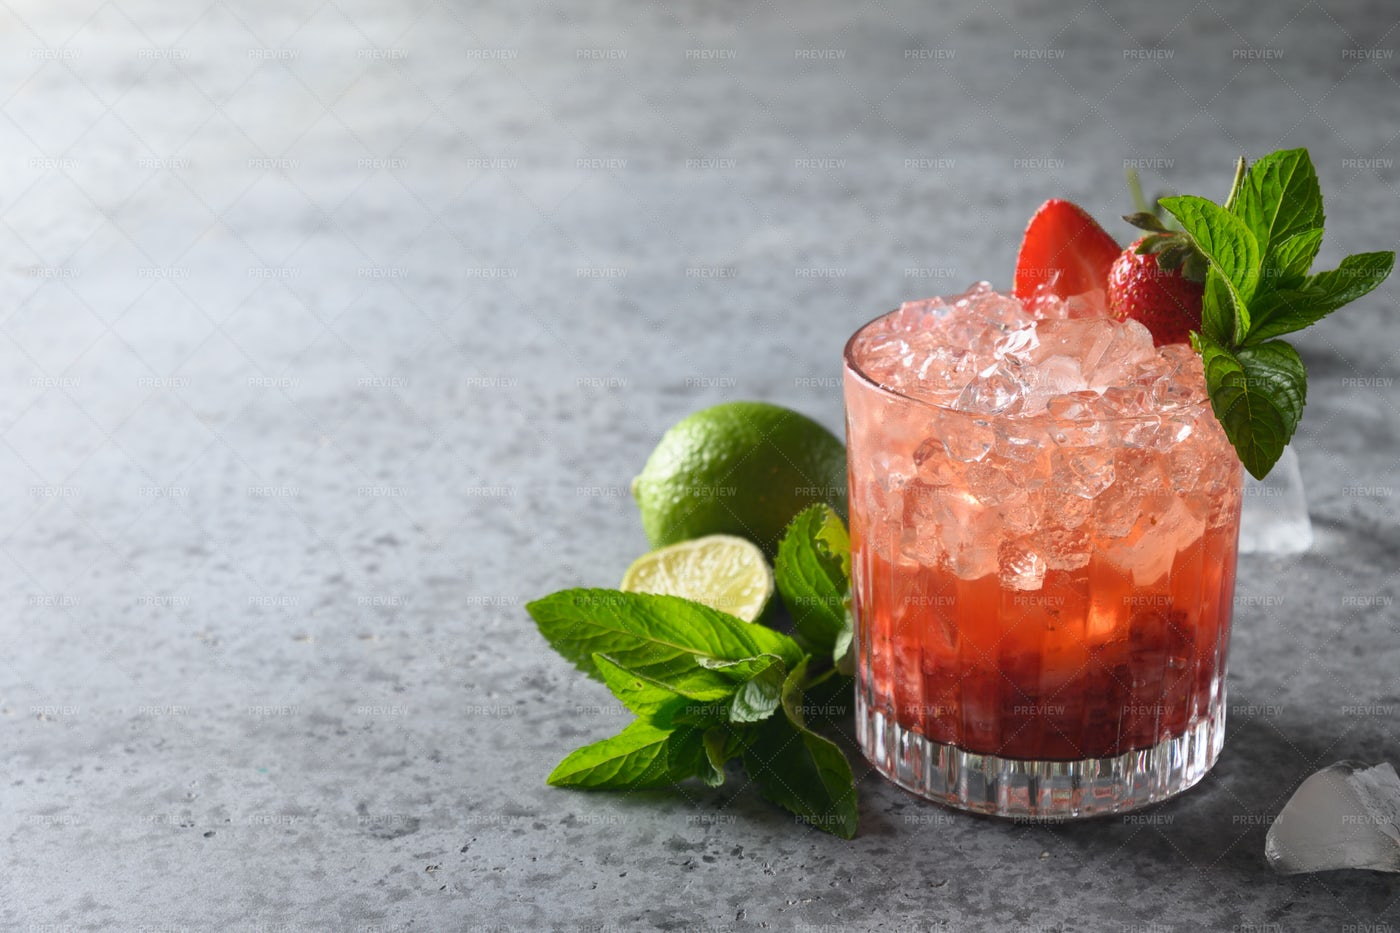 Lemonade With Ice And Strawberries: Stock Photos